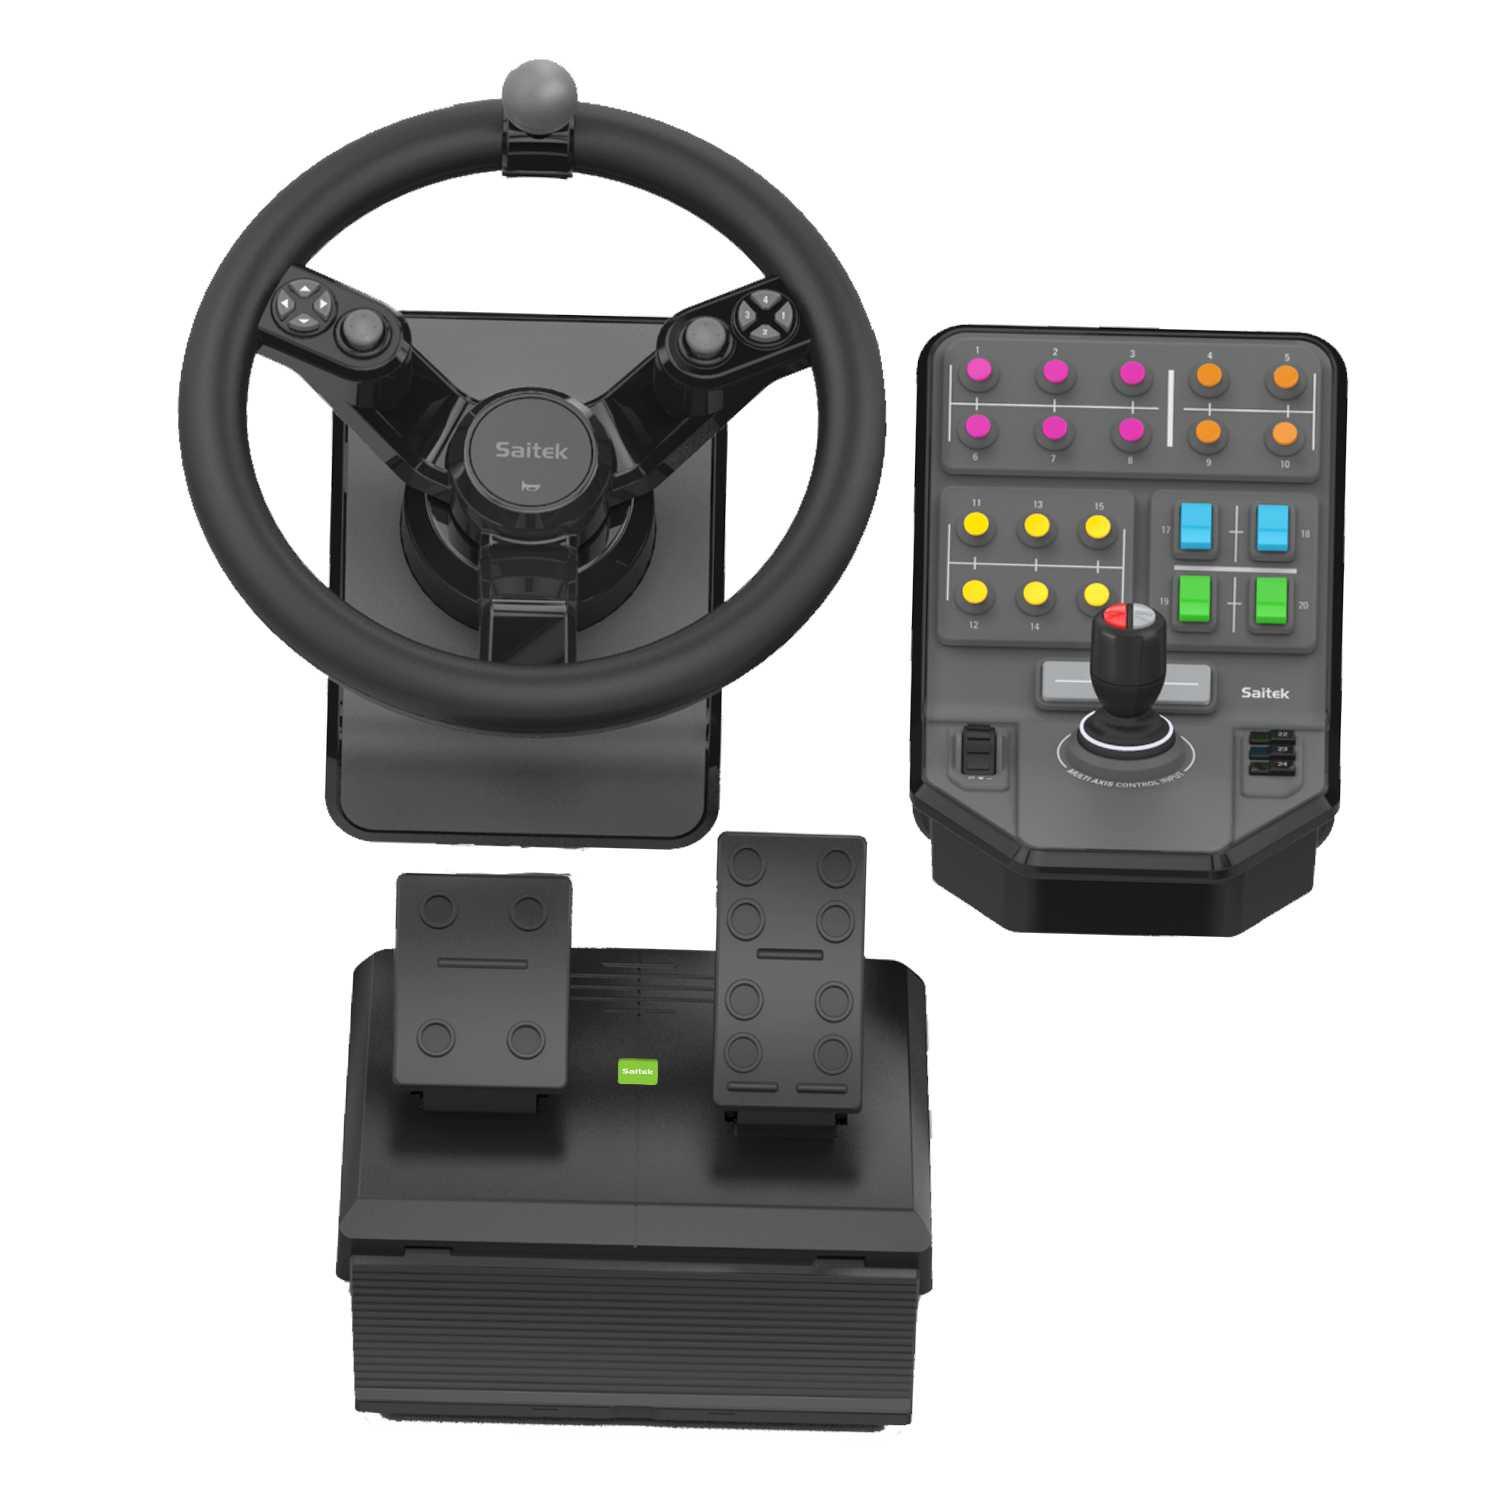 Logitech 945-000062 gaming controller Steering wheel + Pedals Black